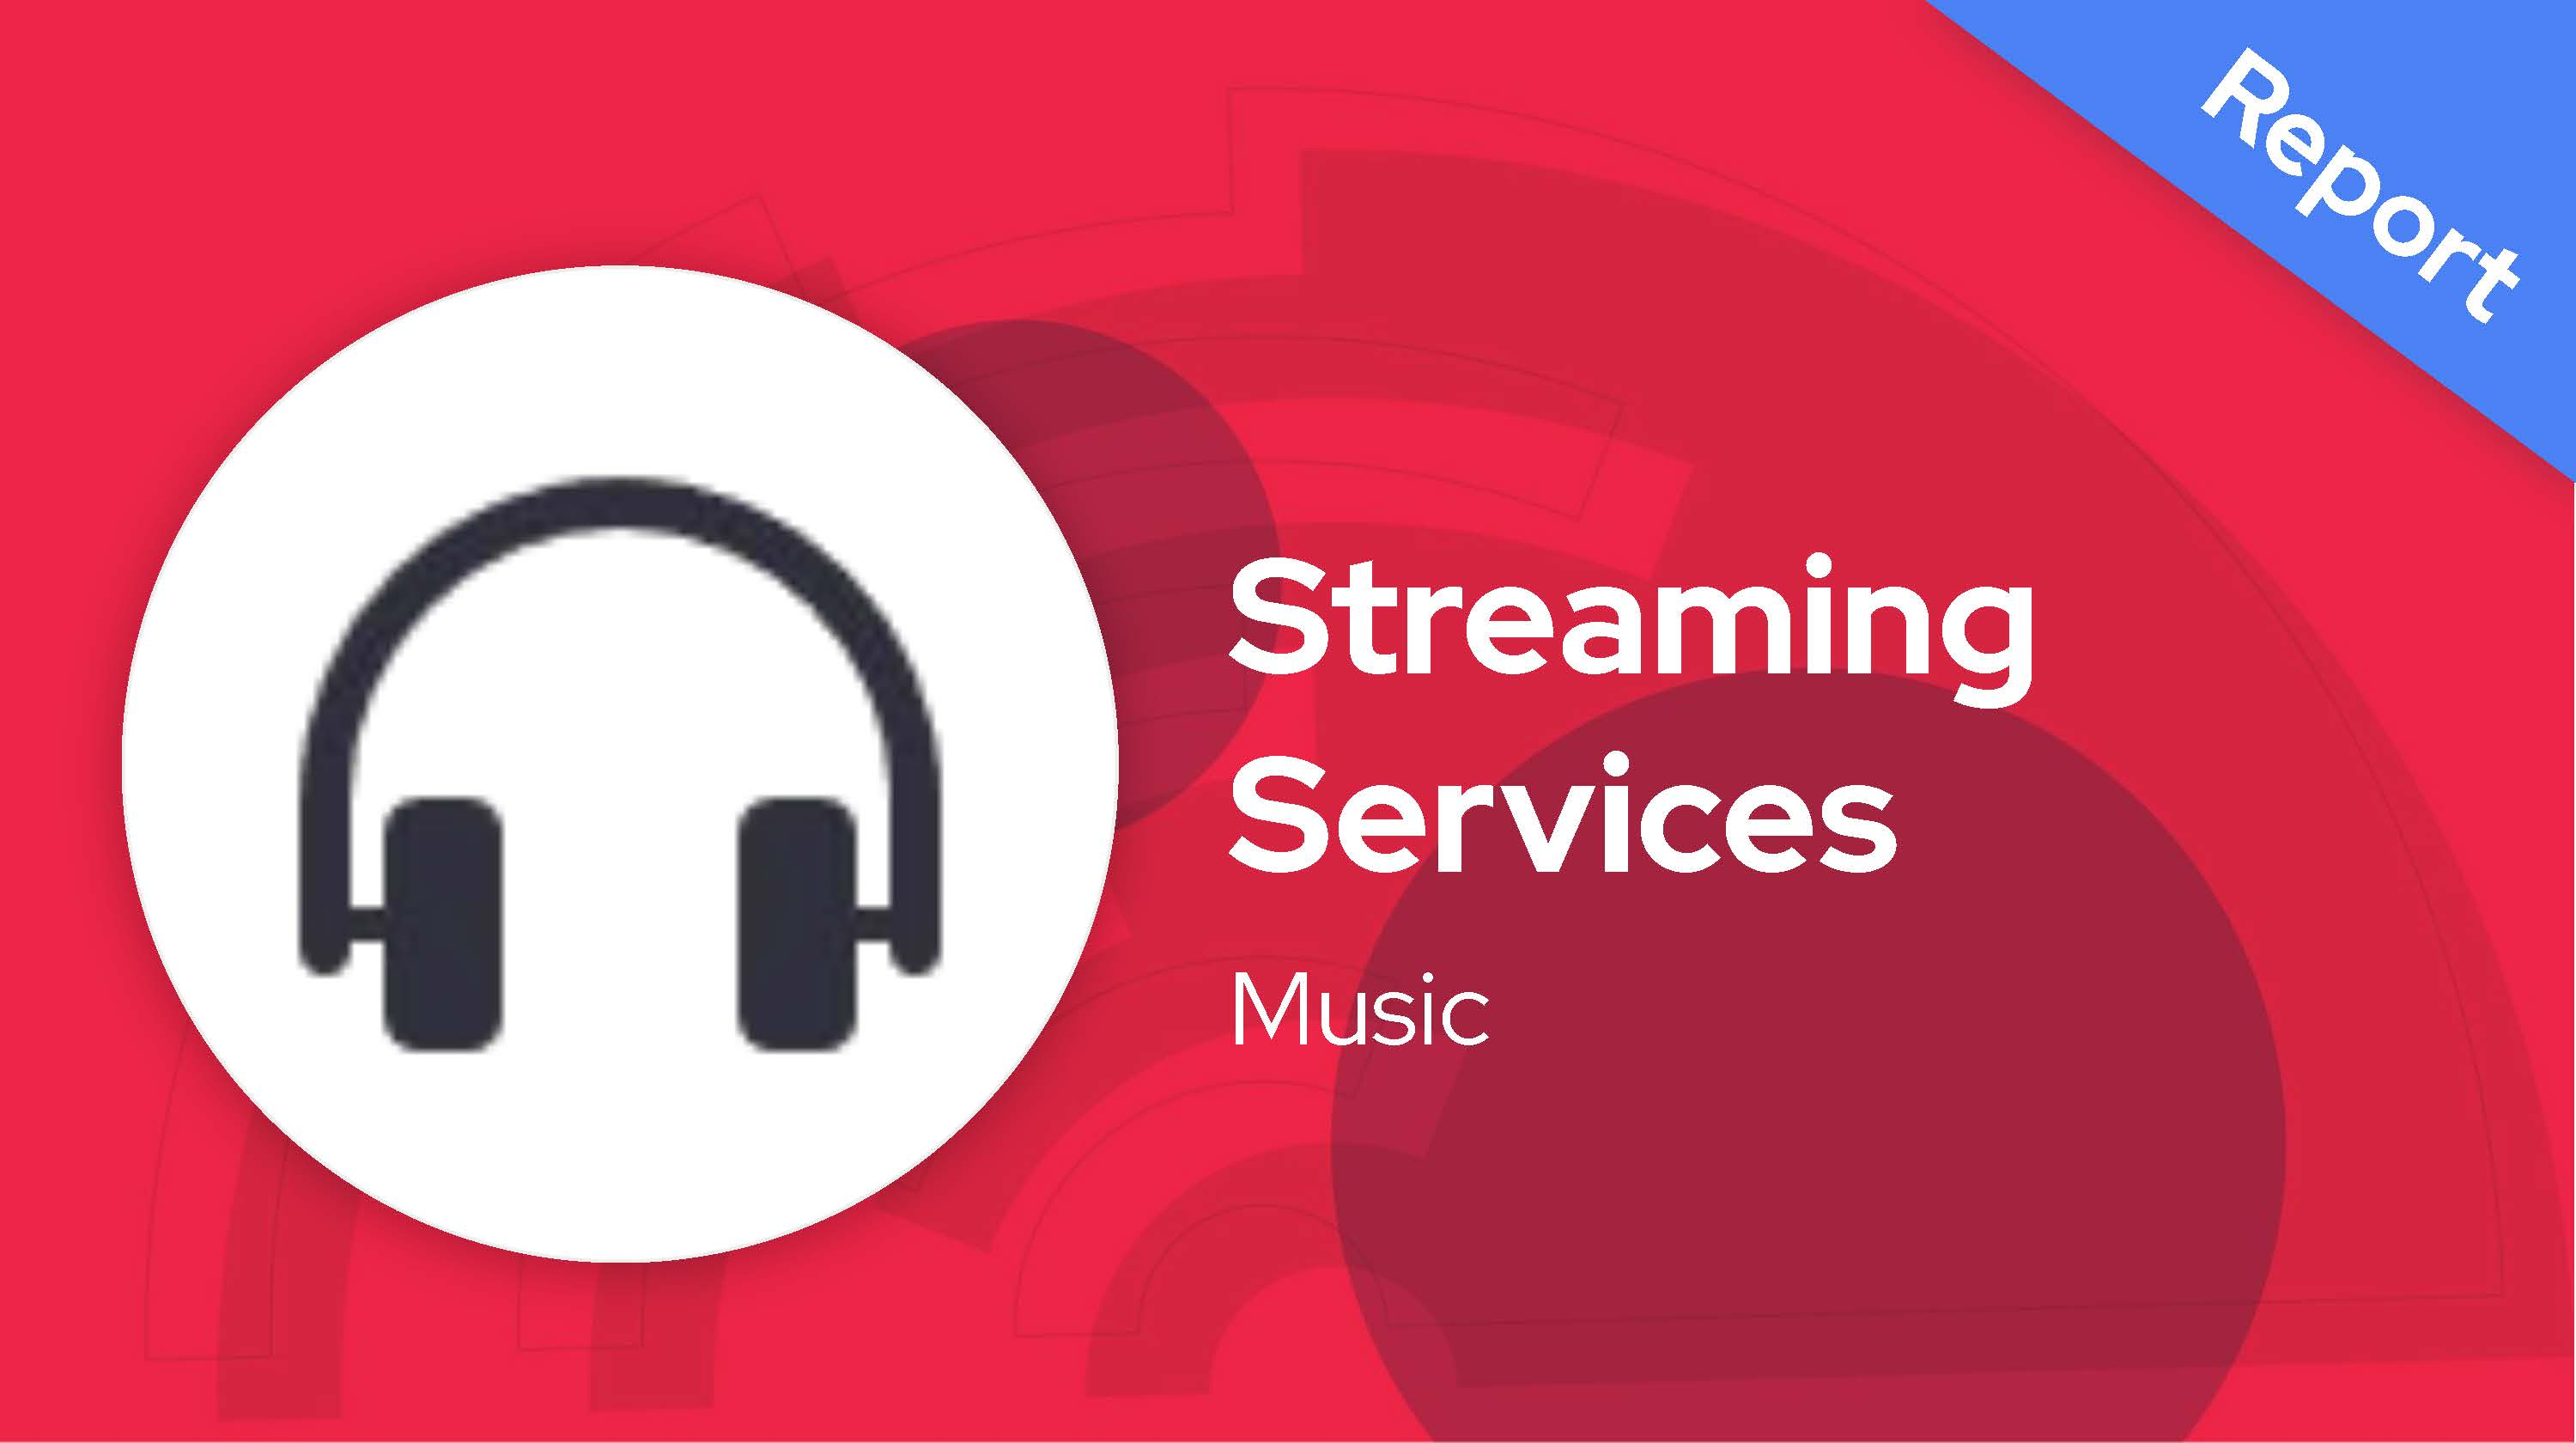 Paid Social Snapshot: Music Streaming Services